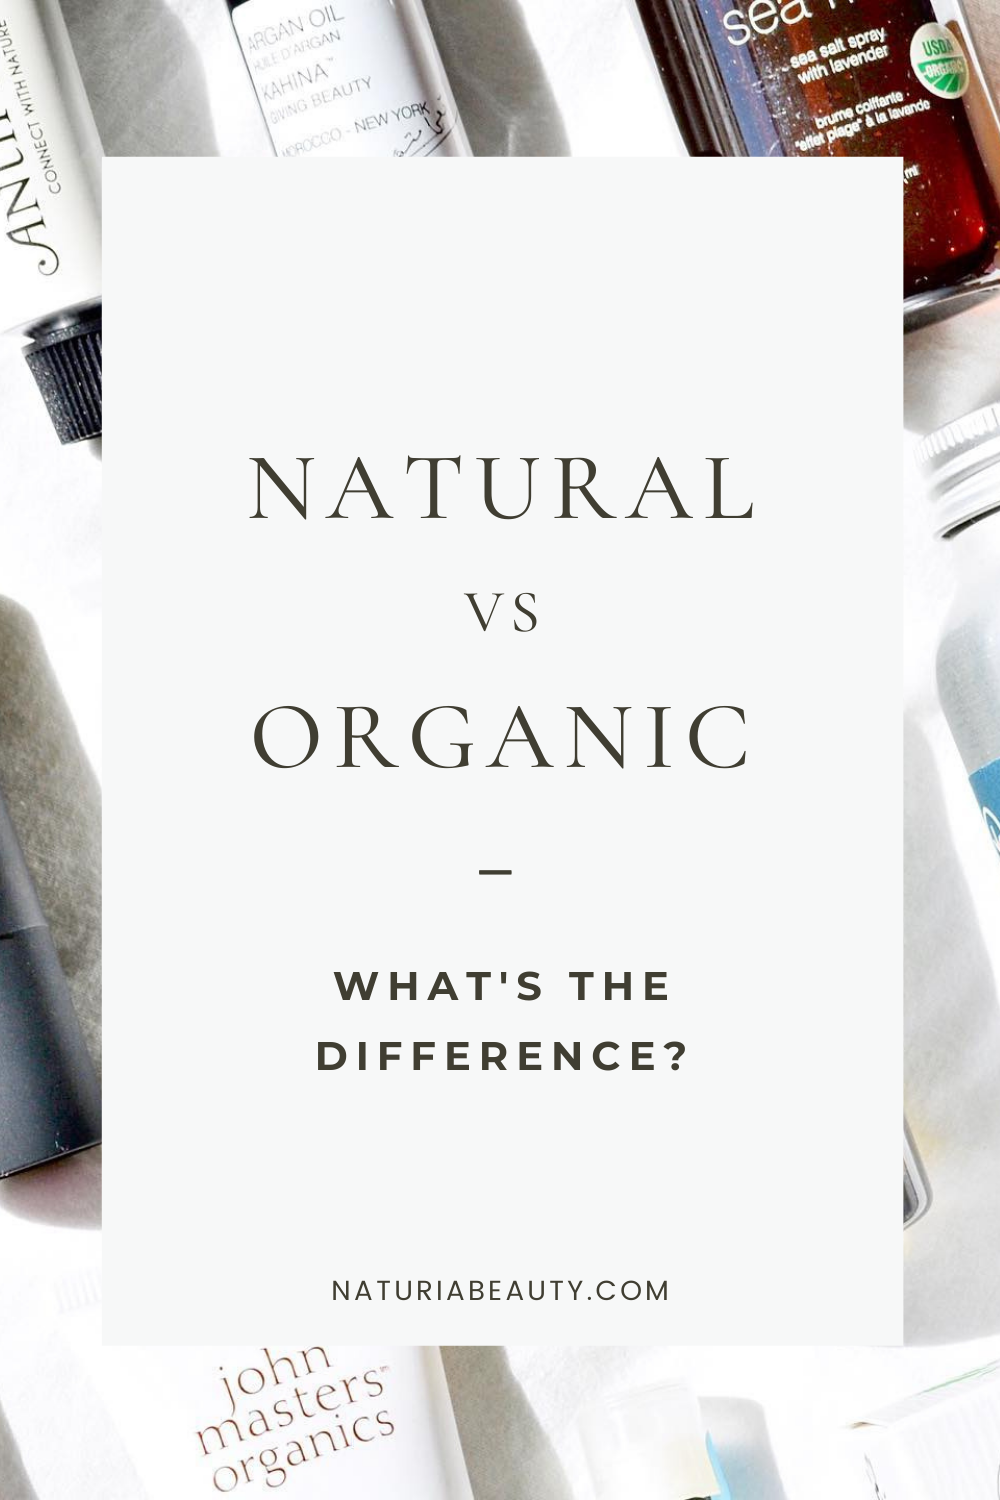 What's the difference between natural and organic beauty?